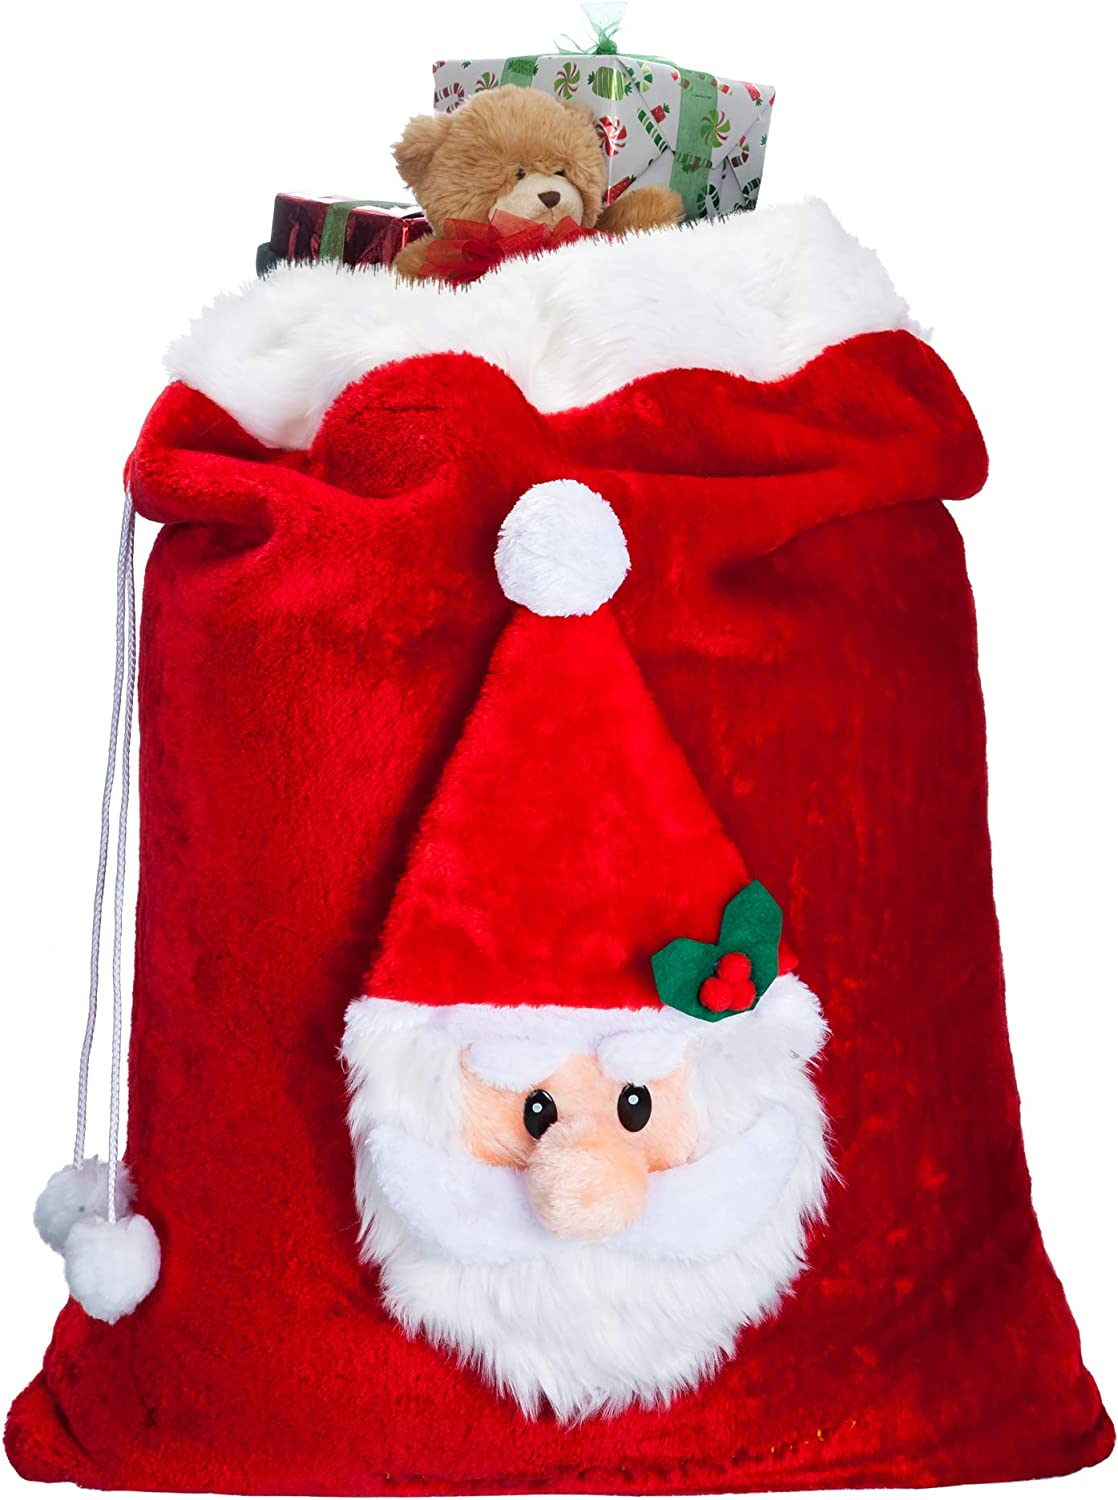 Luxury Oversized Velvet Santa's Gift Sack 3D Plush Faux Fur Cuff with Cord Drawstring – 34in x 24in(Tall x Wide)